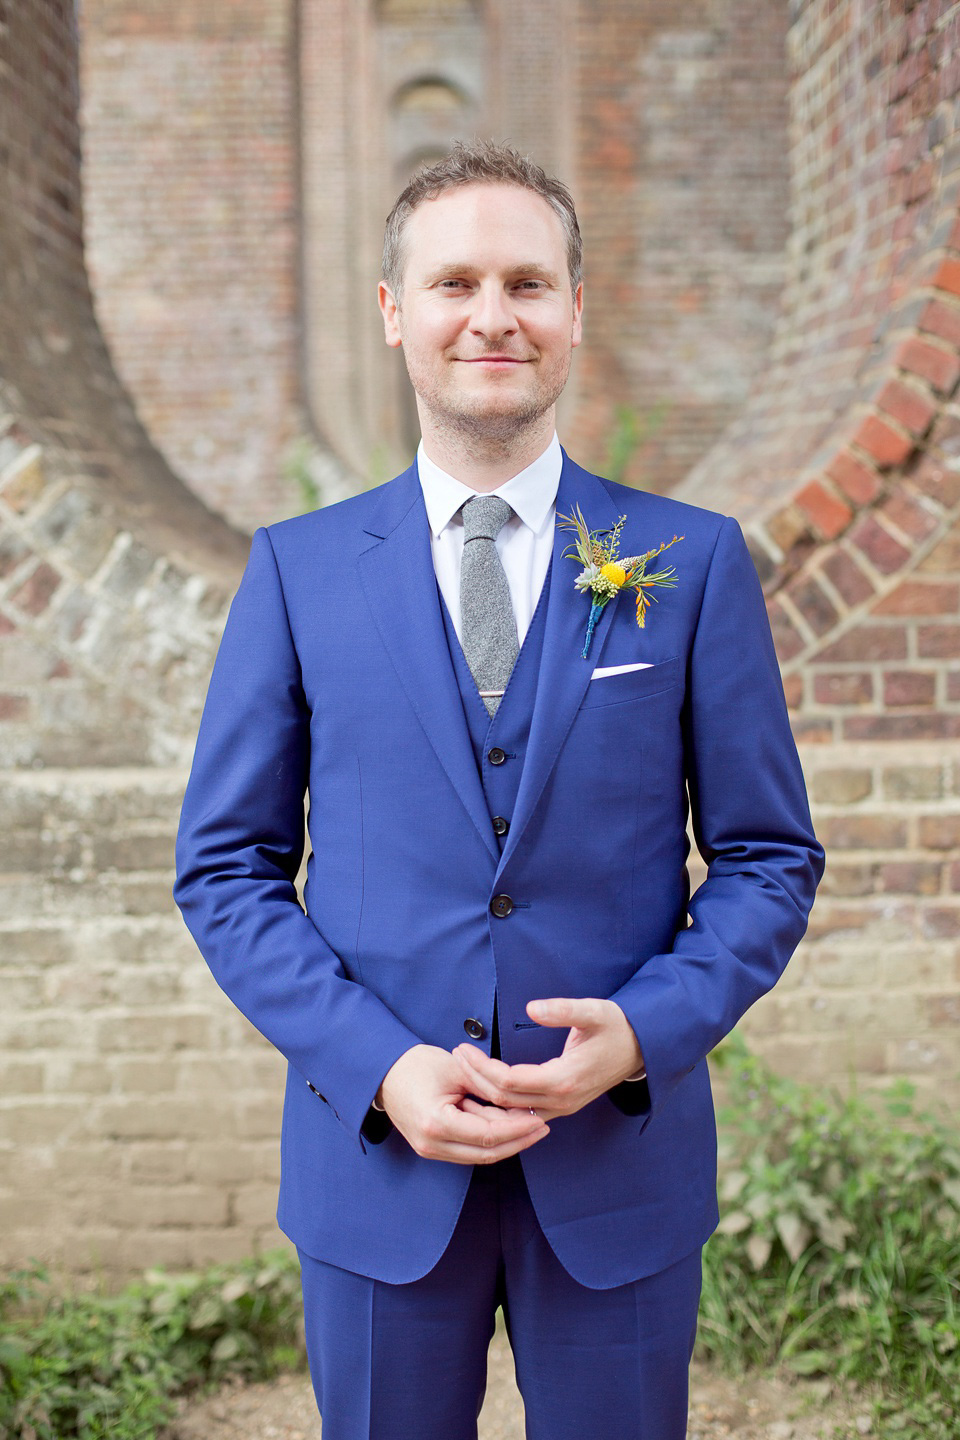 A Railway Museum Wedding with an Elegant Handmade Lace Gown and Maids in Navy Blue (Weddings )